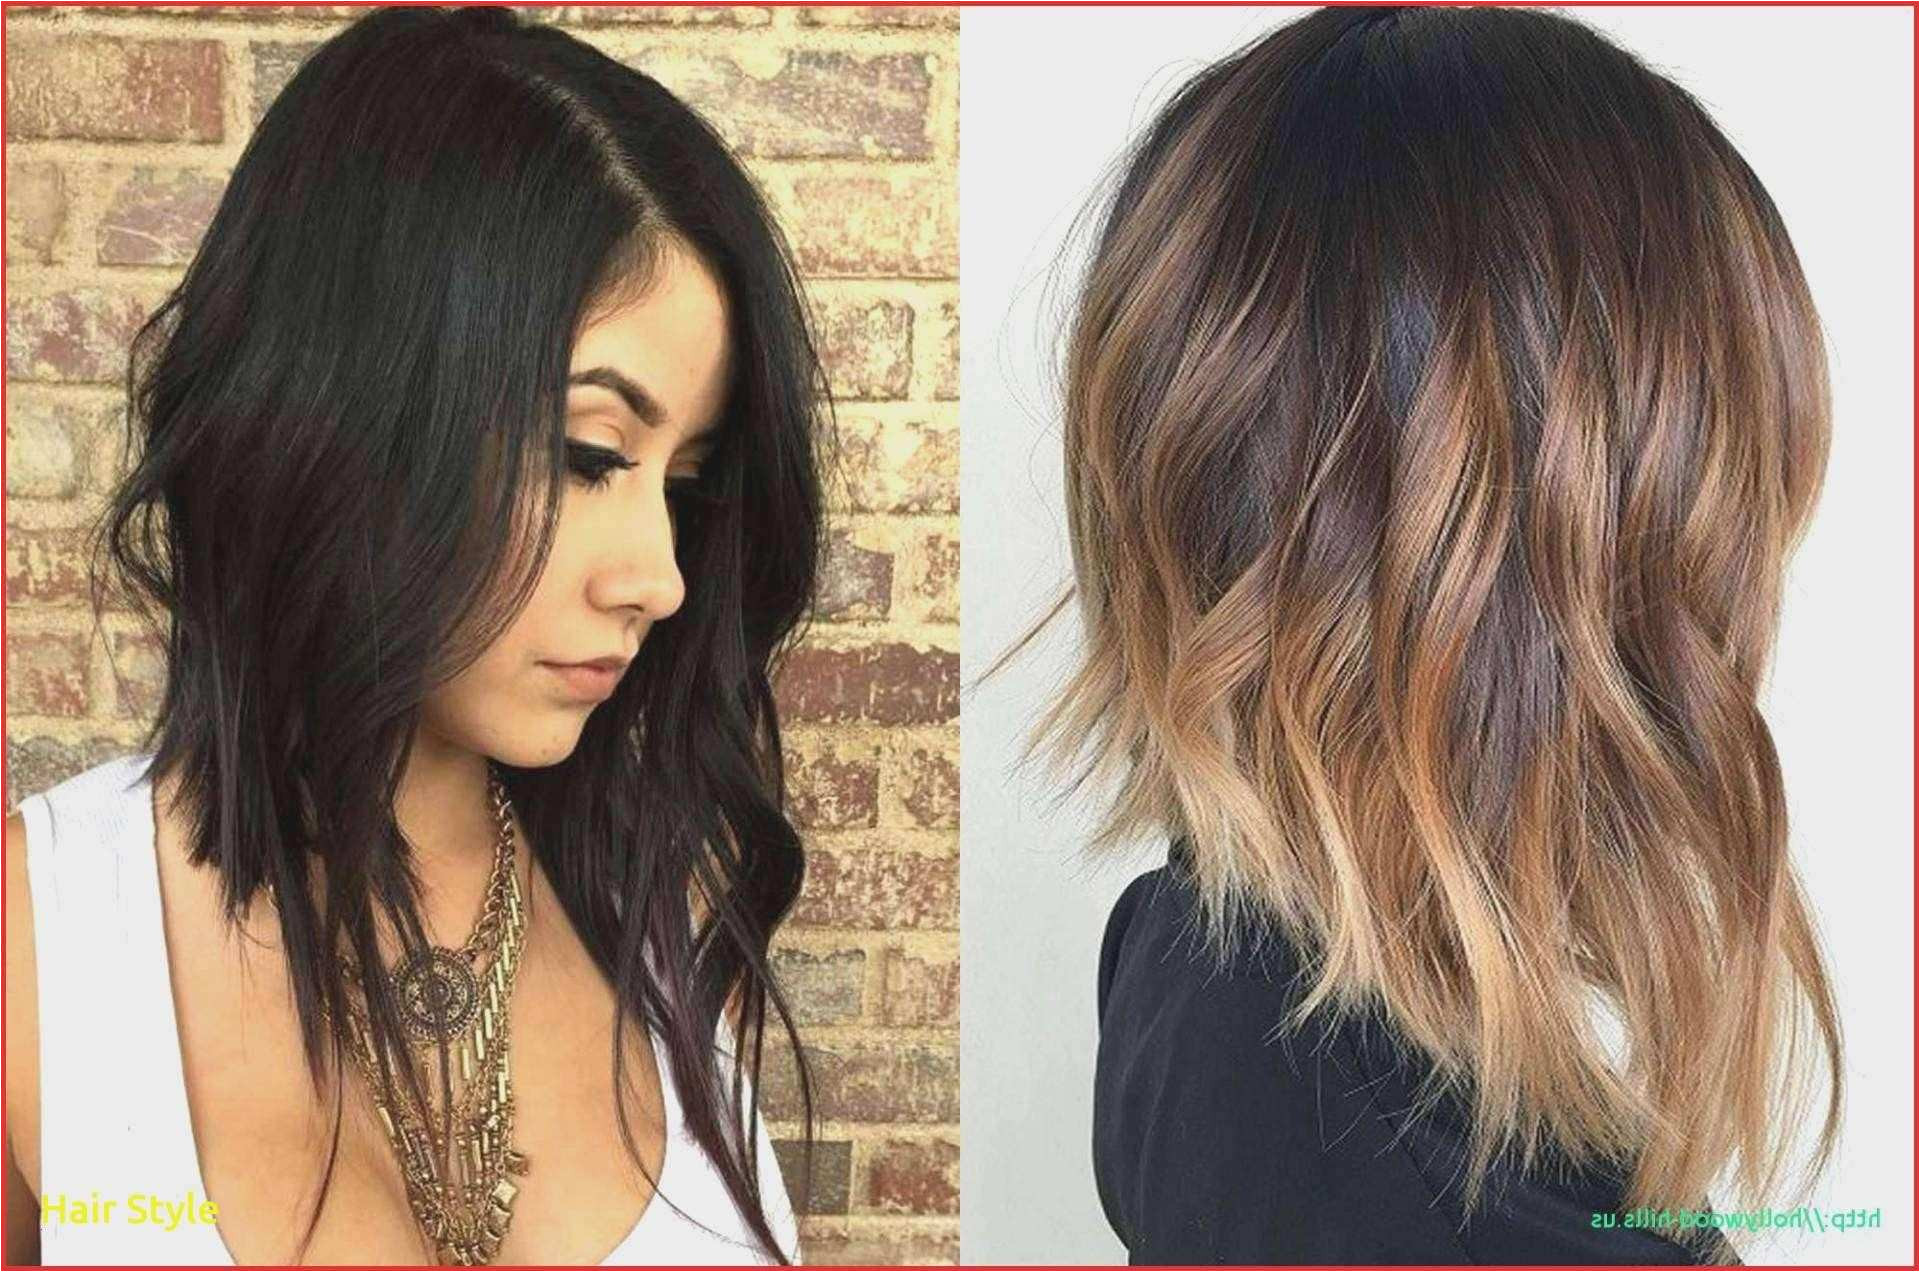 All Hairstyles for Girls Beautiful Hair Style Names Best Haircut Names All Hairstyle Names All